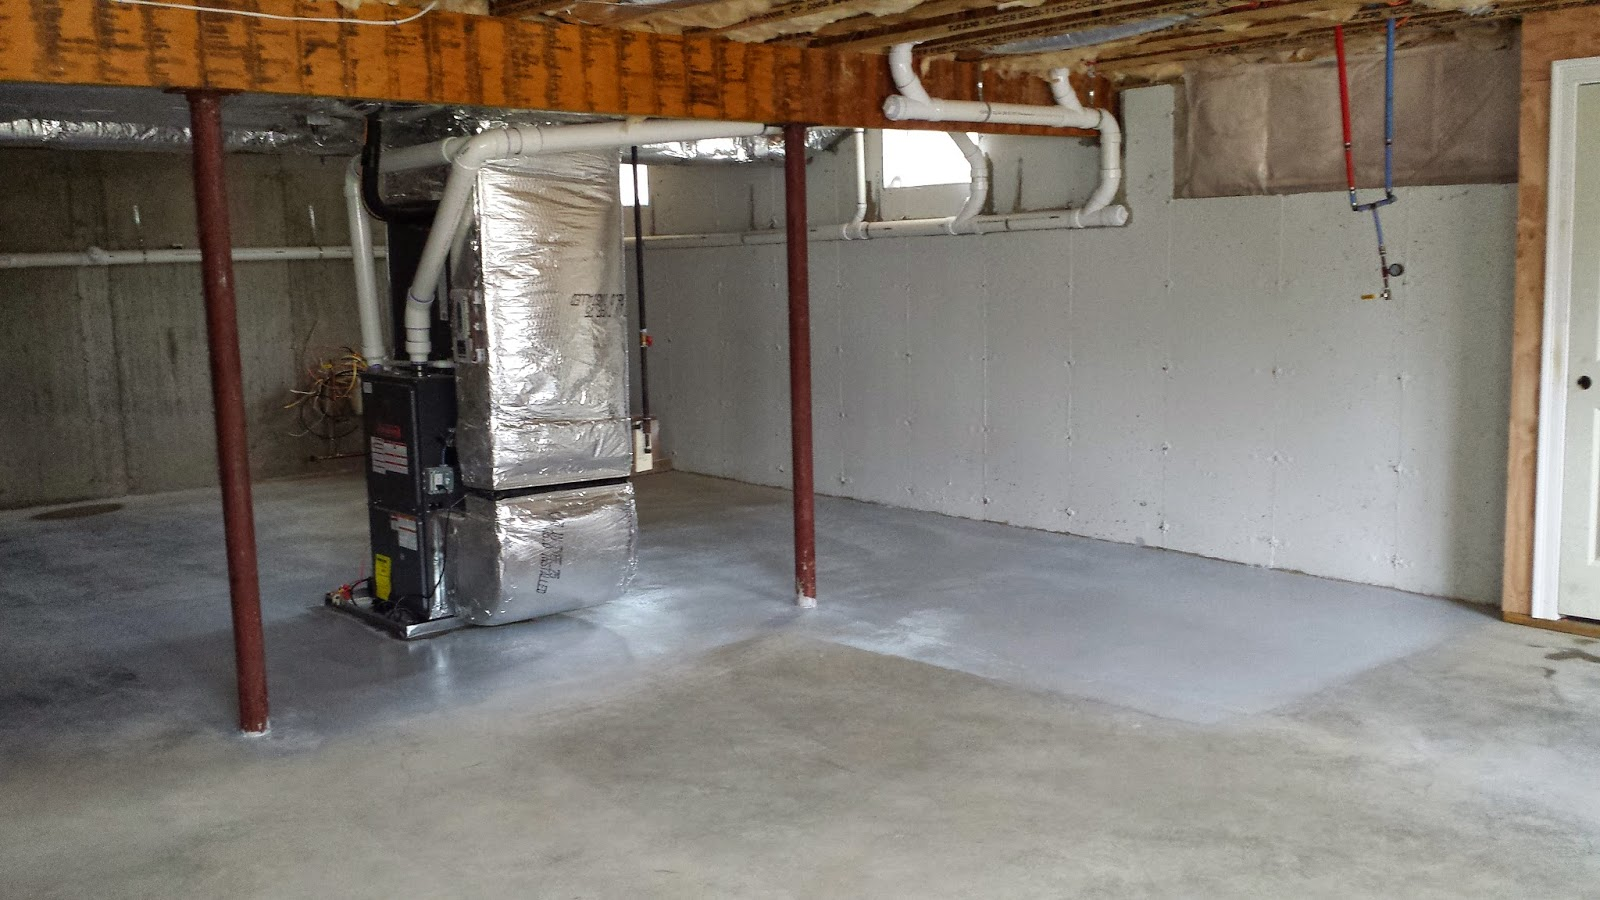 ocean state home painting the basement floor a little snow 6d4322